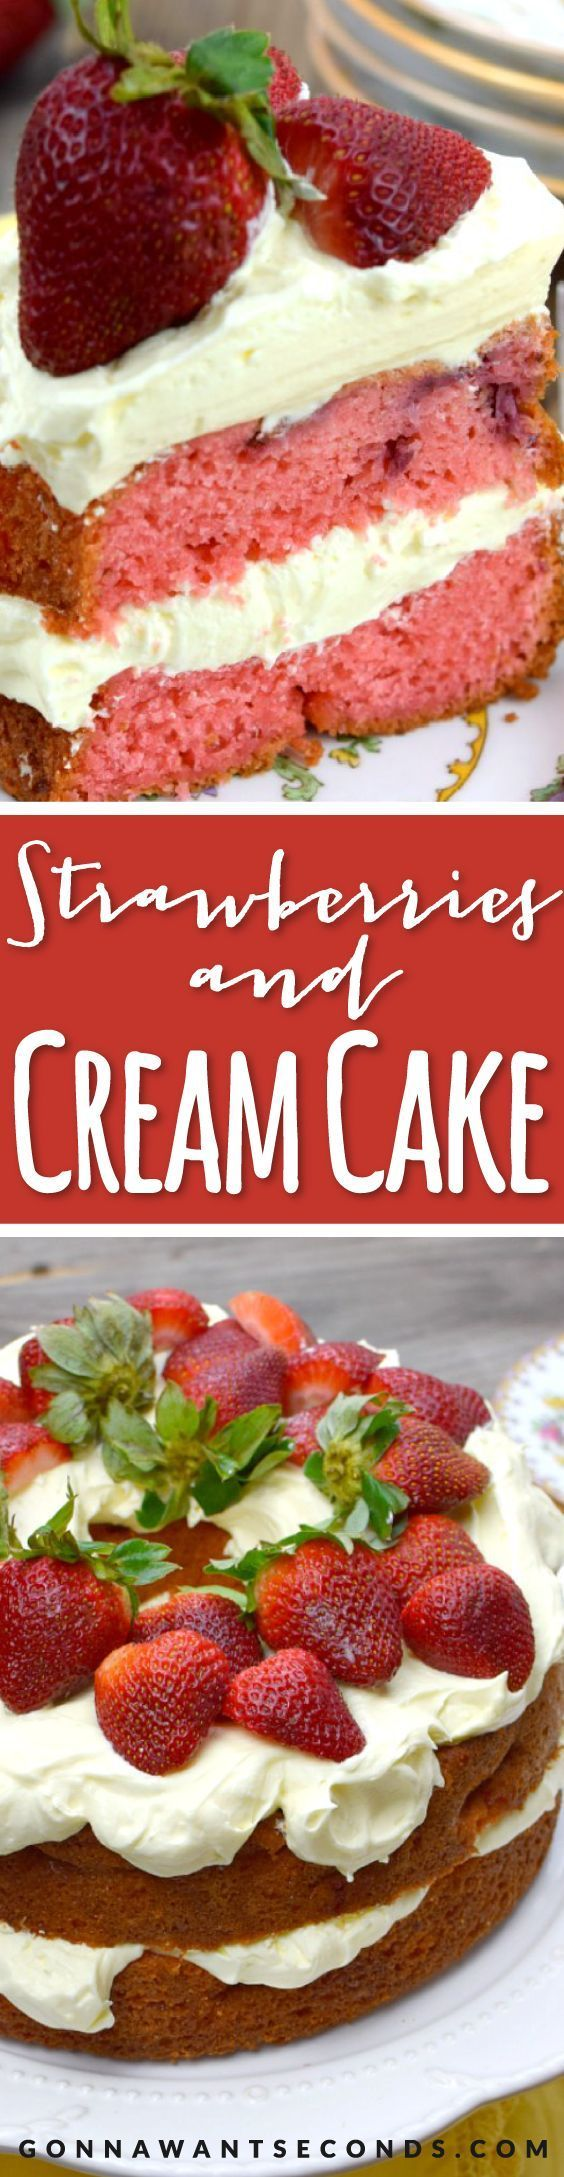 This Strawberries and Cream Cake is made up of super moist strawberry cake with layers of luscious vanilla cream and of course loads of fresh strawberries!